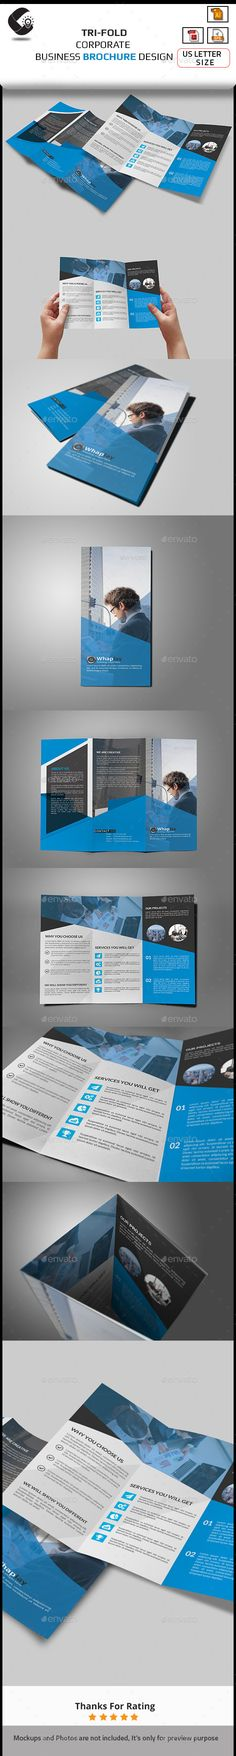 Fitness Gym Bifold \/ Halffold Brochure Fitness, Gym and Brochures - fitness brochure